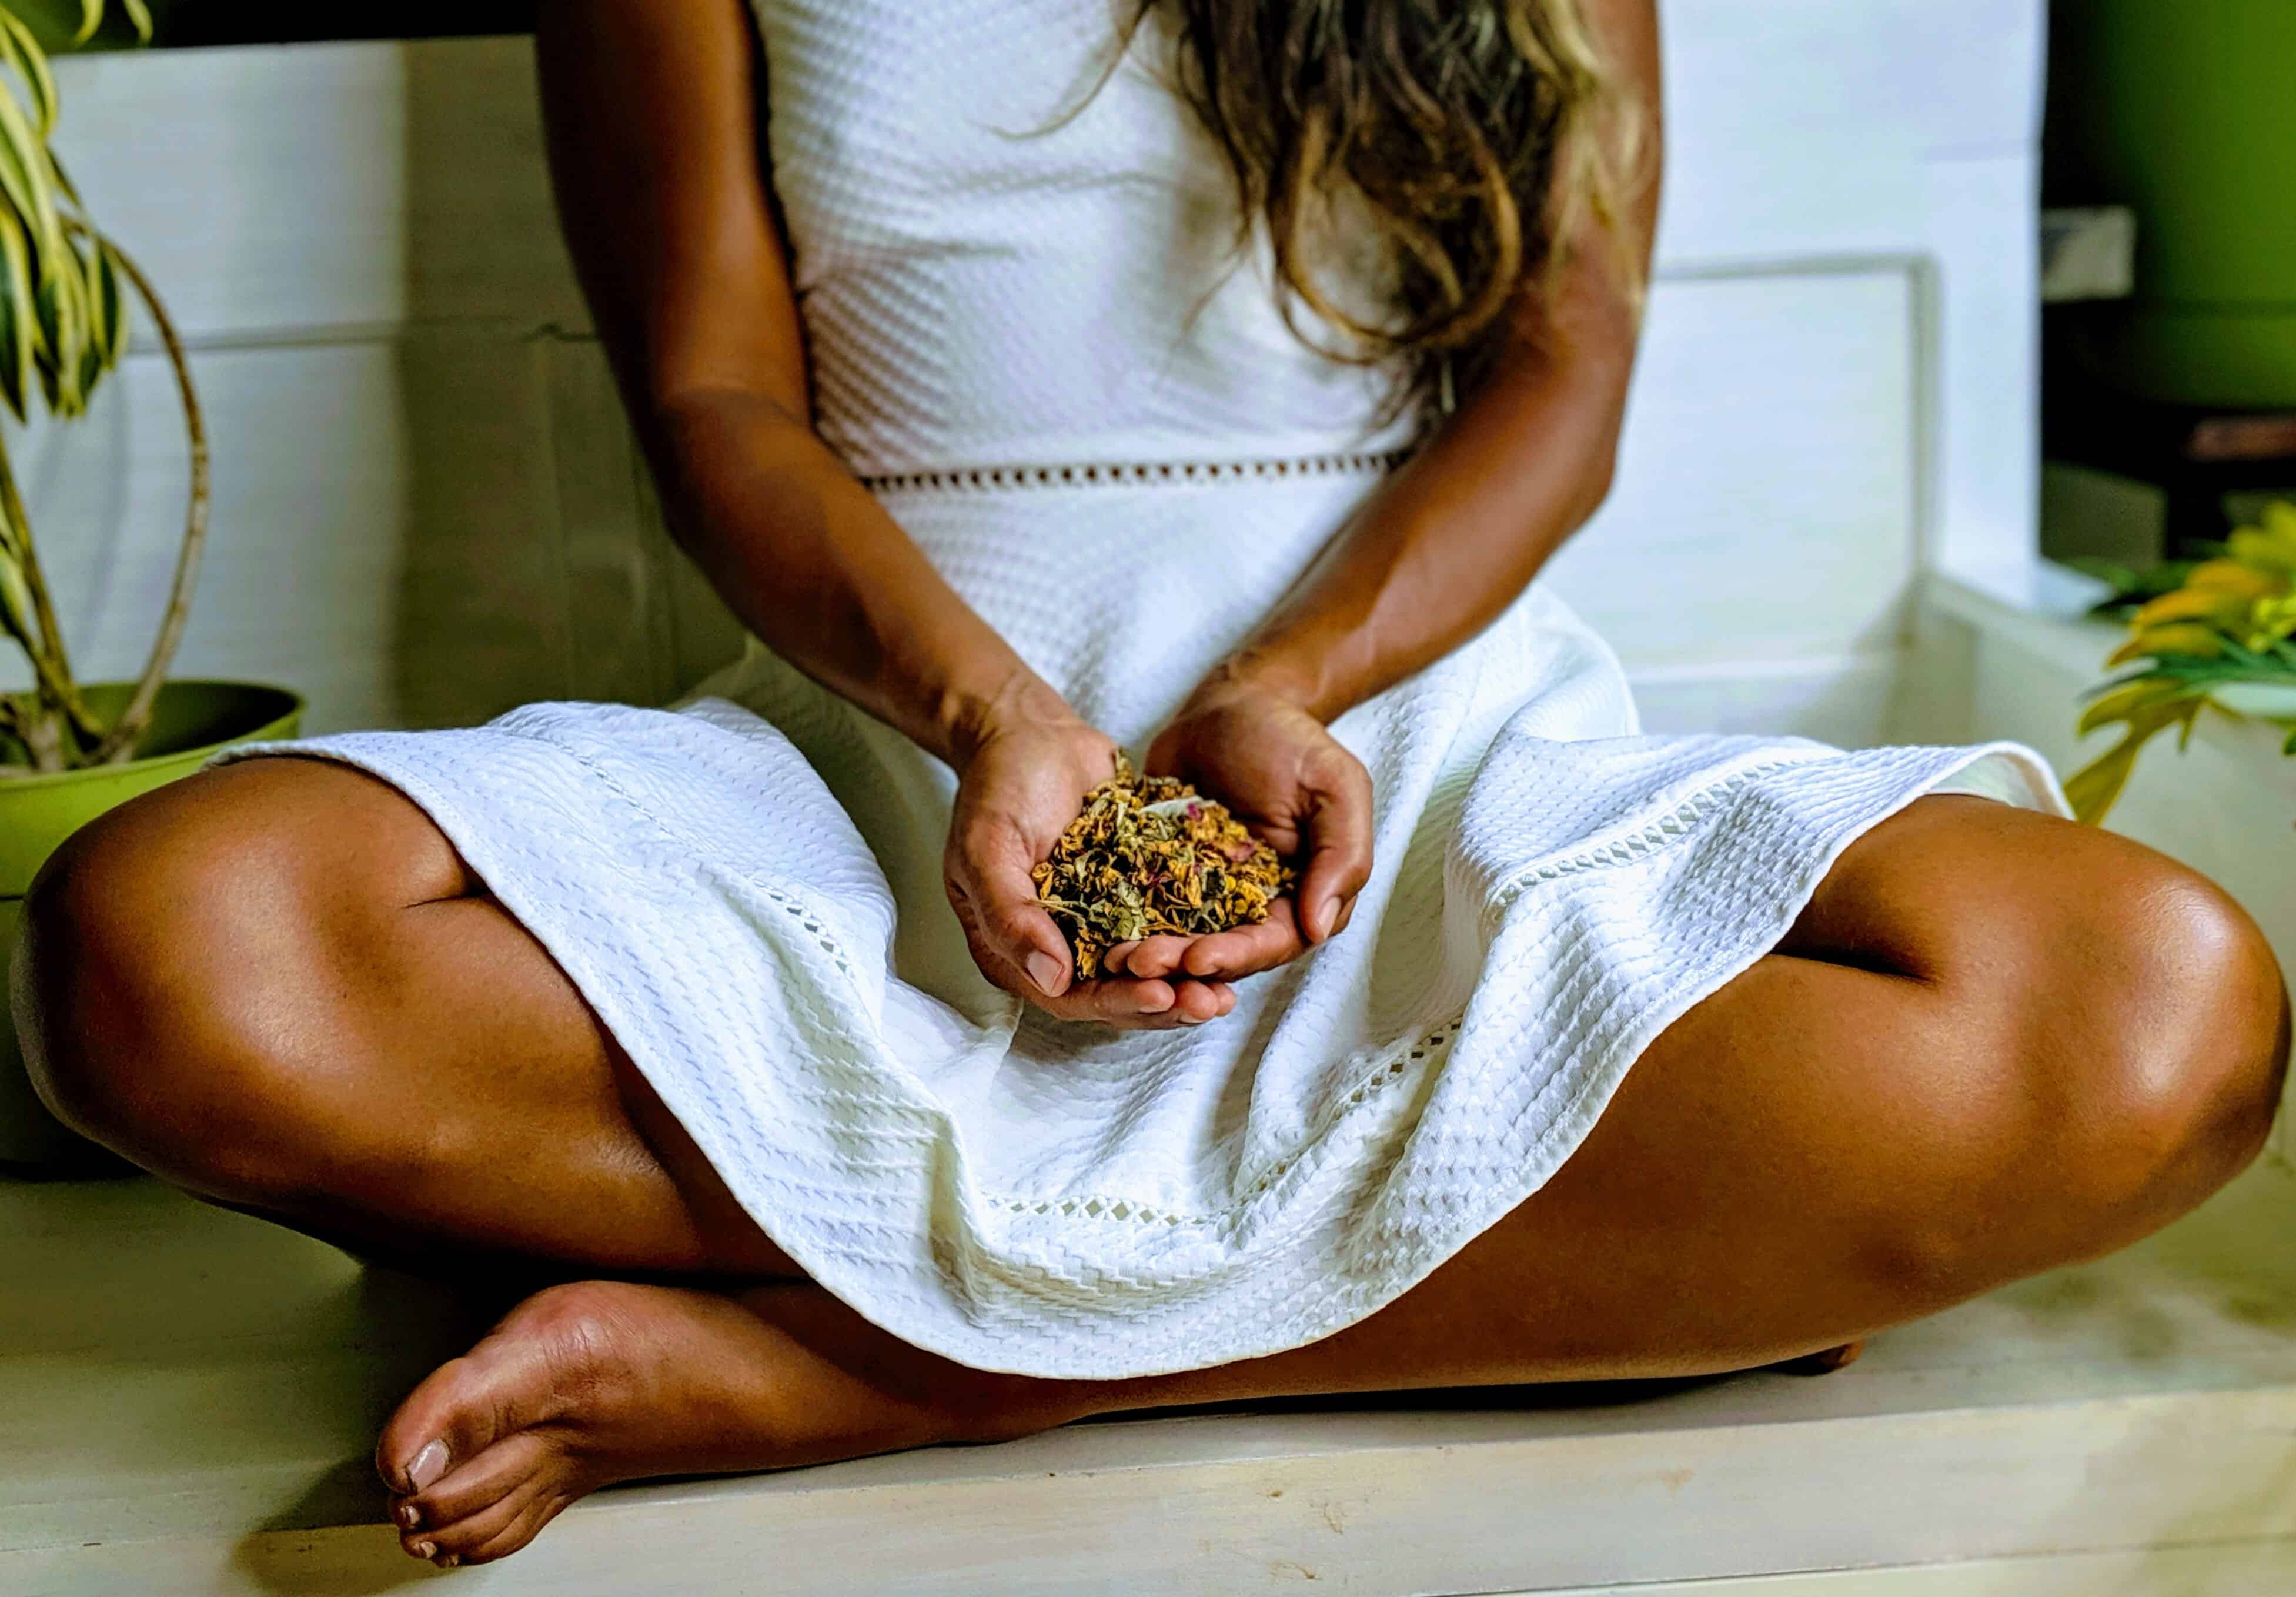 woman sitting in white dress with organic herbs for vaginal steaming